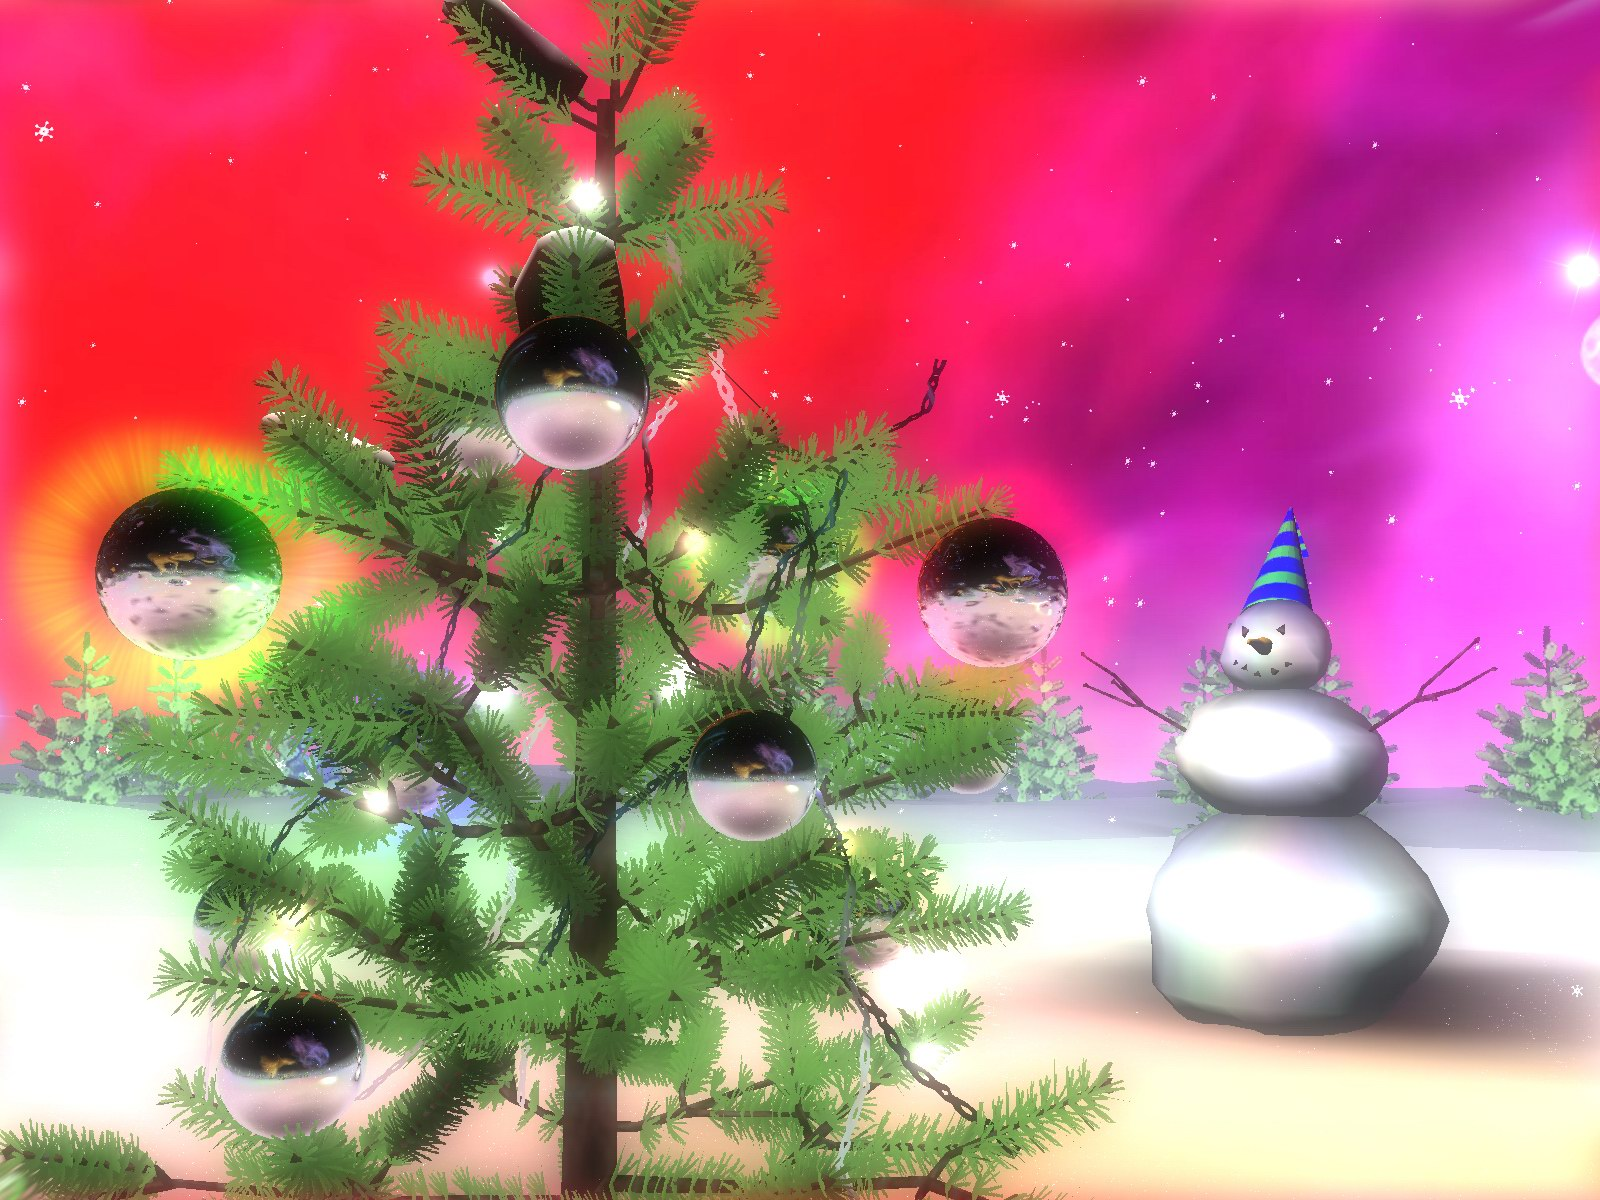 Chirstmas: Free Christmas Screensavers